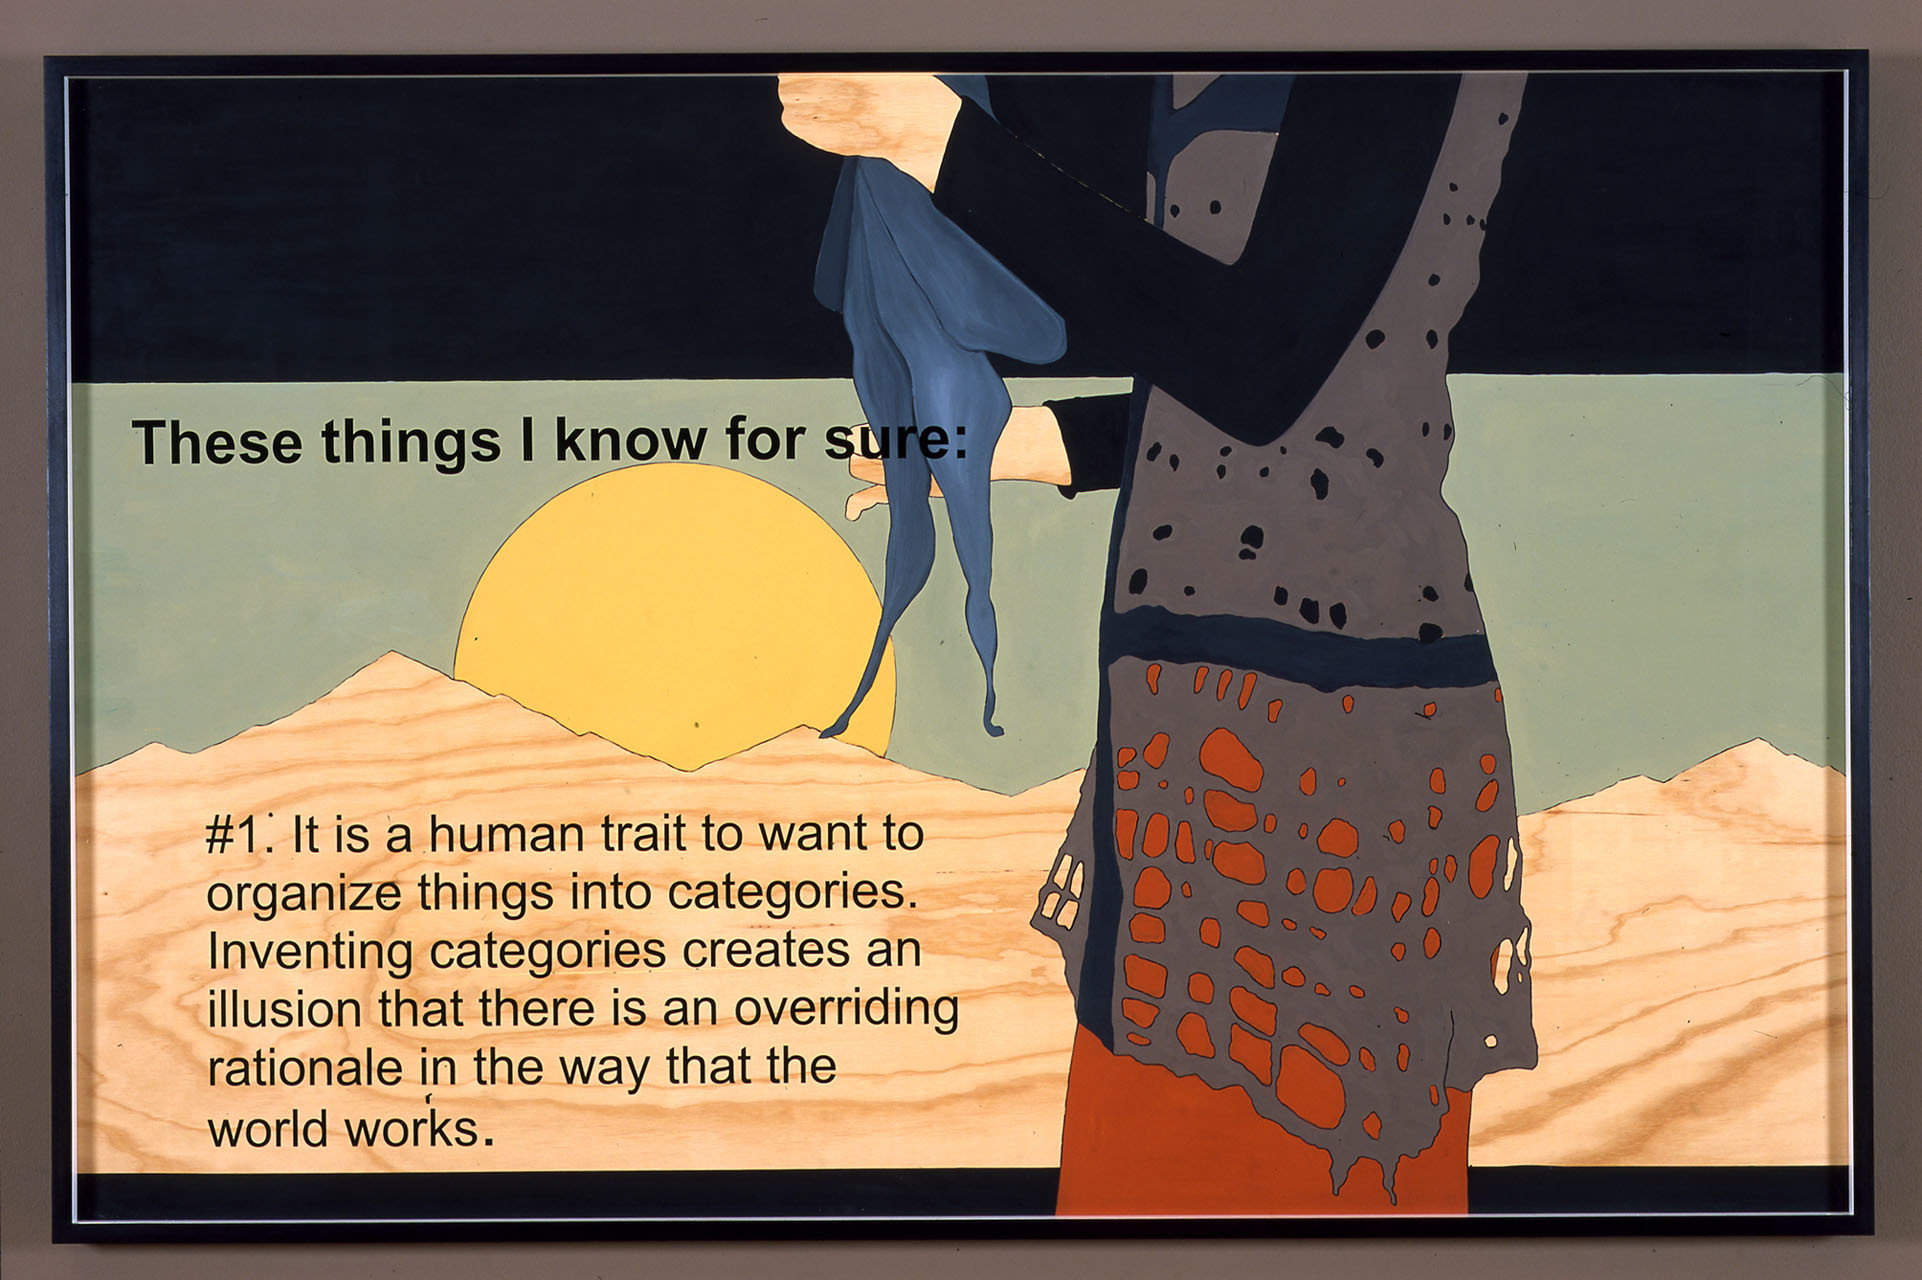 "<div class=""artwork_caption""><p>Prototype For Billboard at A-Z West: These Things I Know for Sure #1 (AZ in fiber form holding scarf), 2006</p></div>"